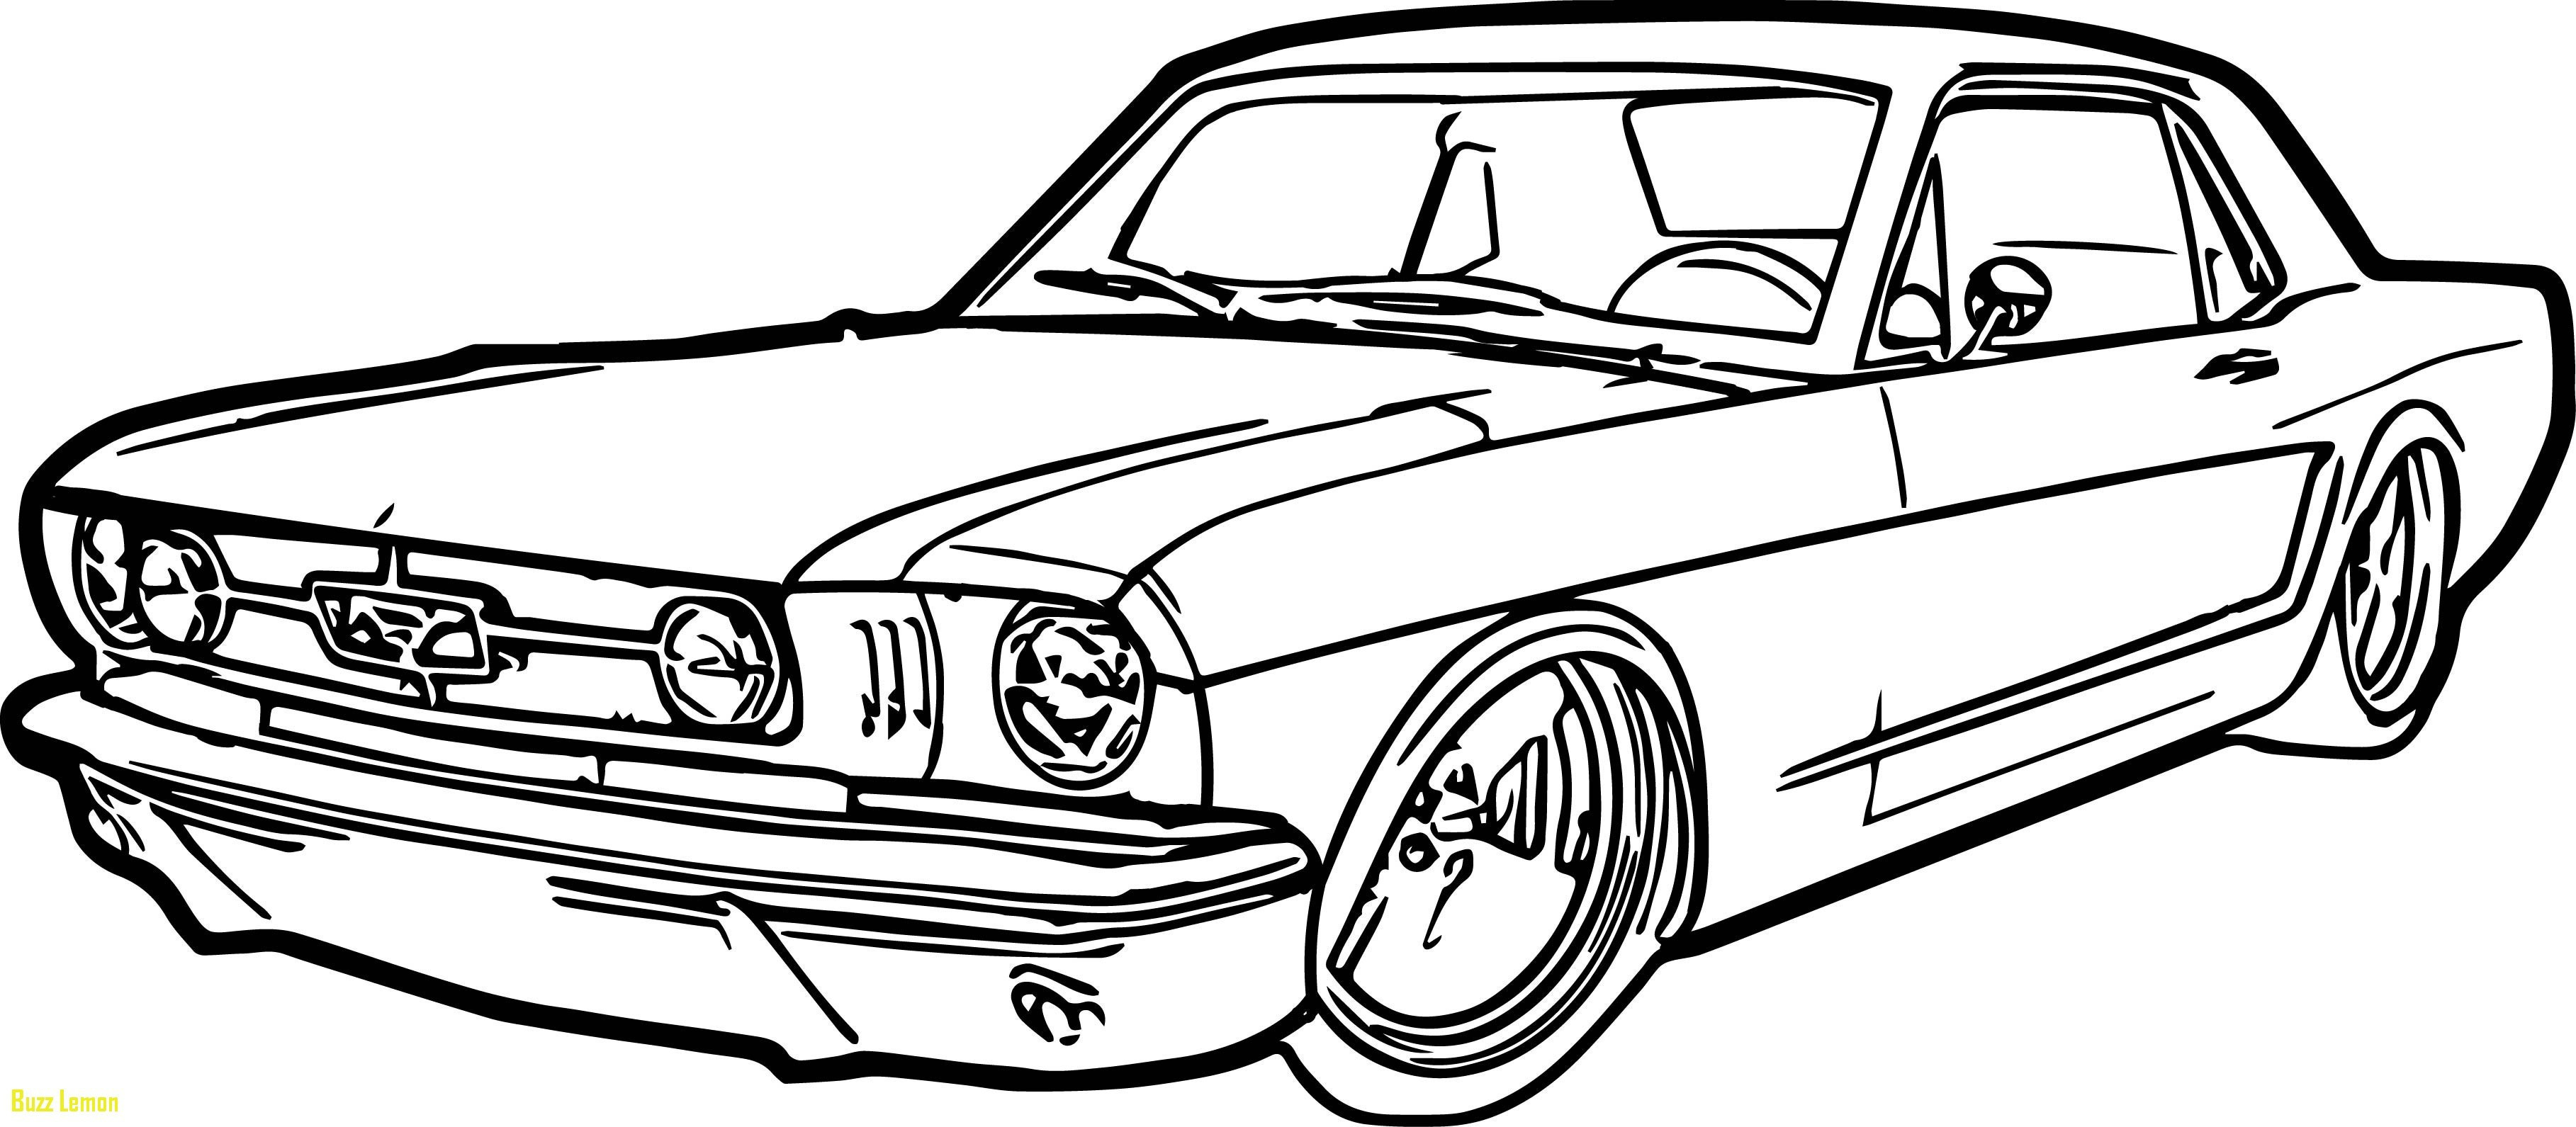 awesome car coloring pages cool cars coloring pages sketch coloring page coloring awesome car pages